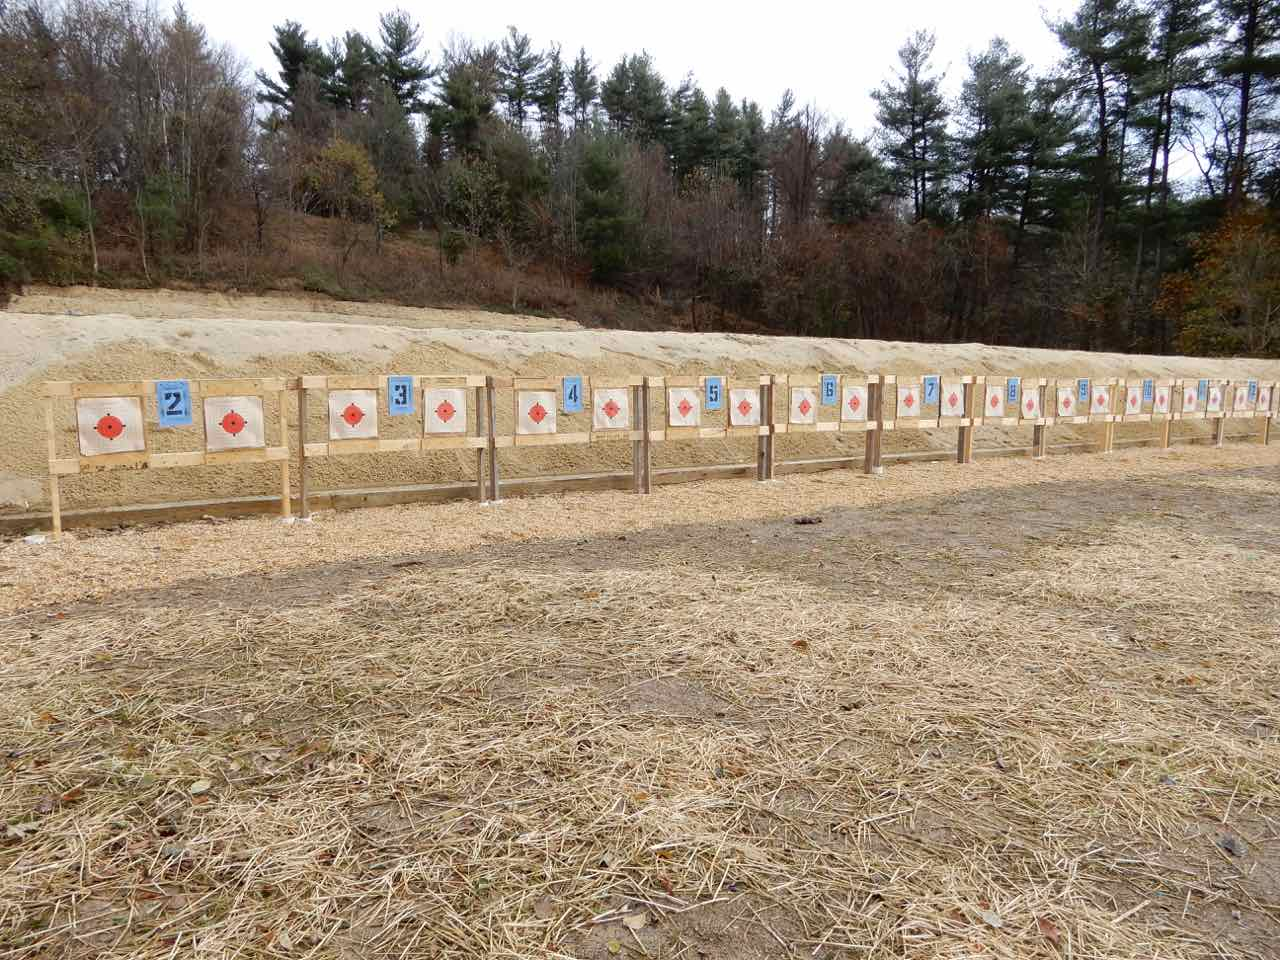 50 Yard Rifle Line